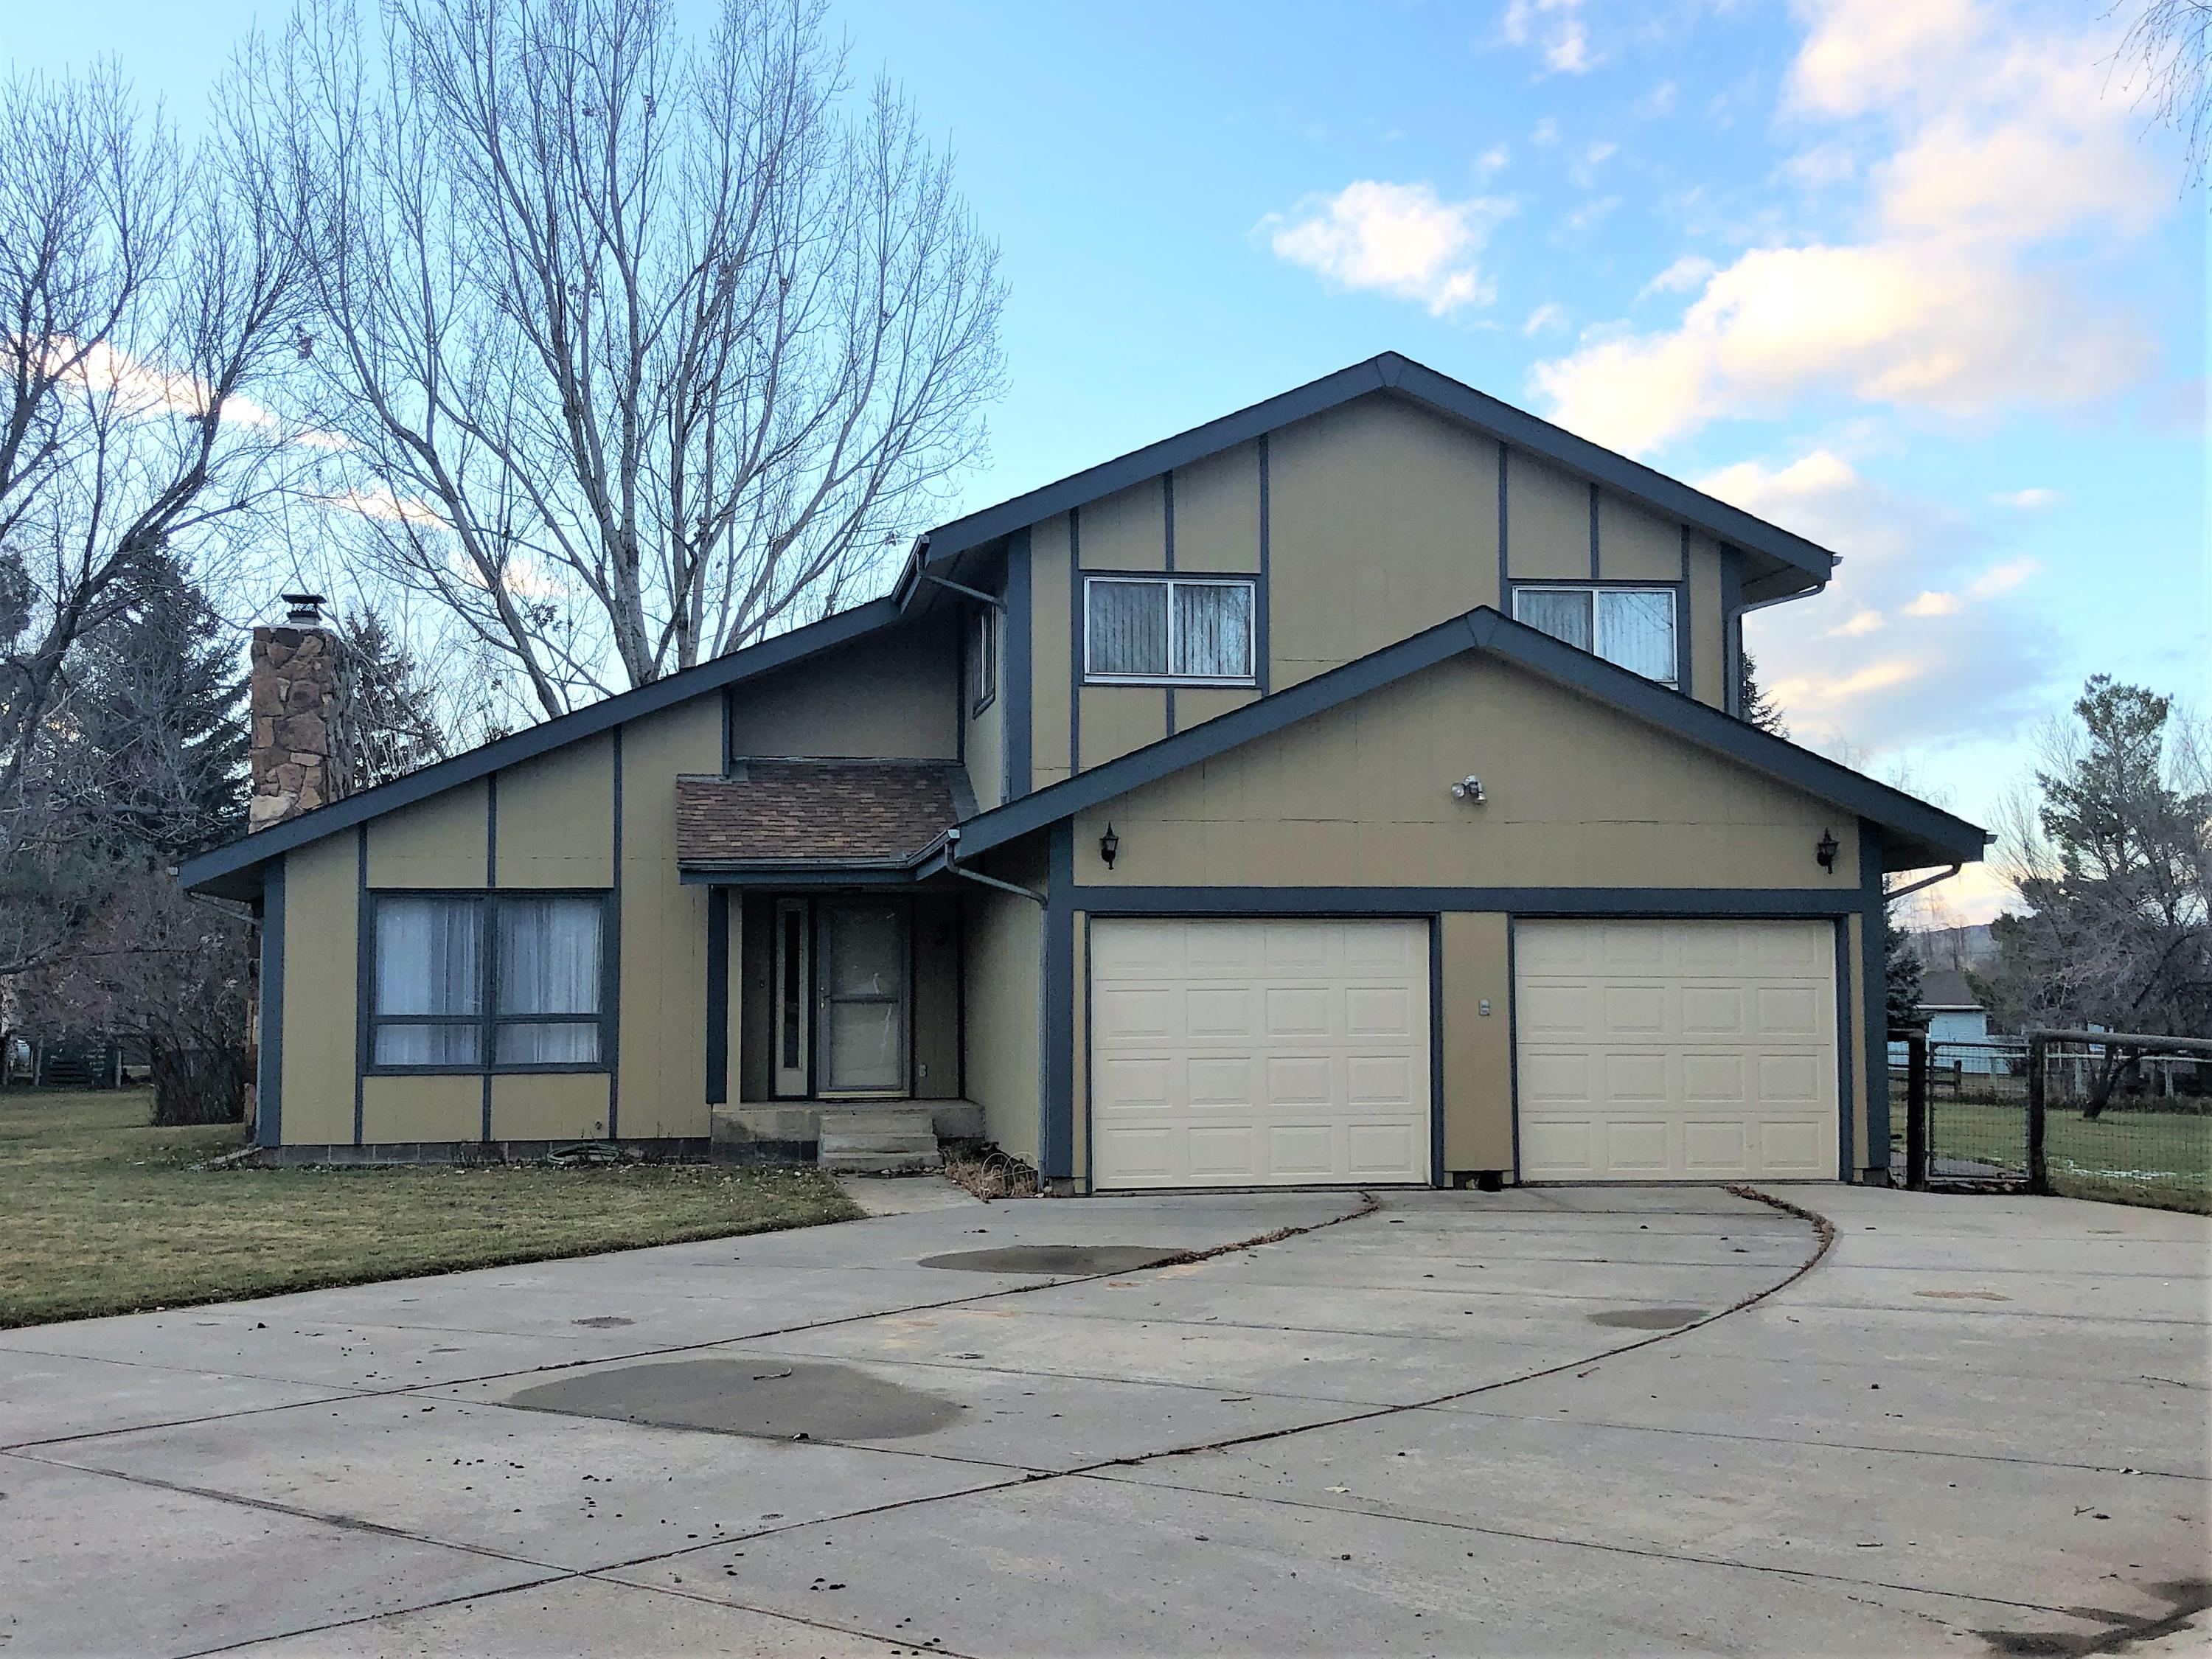 3 Kleiber Drive, Dayton, Wyoming 82836, 3 Bedrooms Bedrooms, ,2.5 BathroomsBathrooms,Residential,For Sale,Kleiber,18-1118